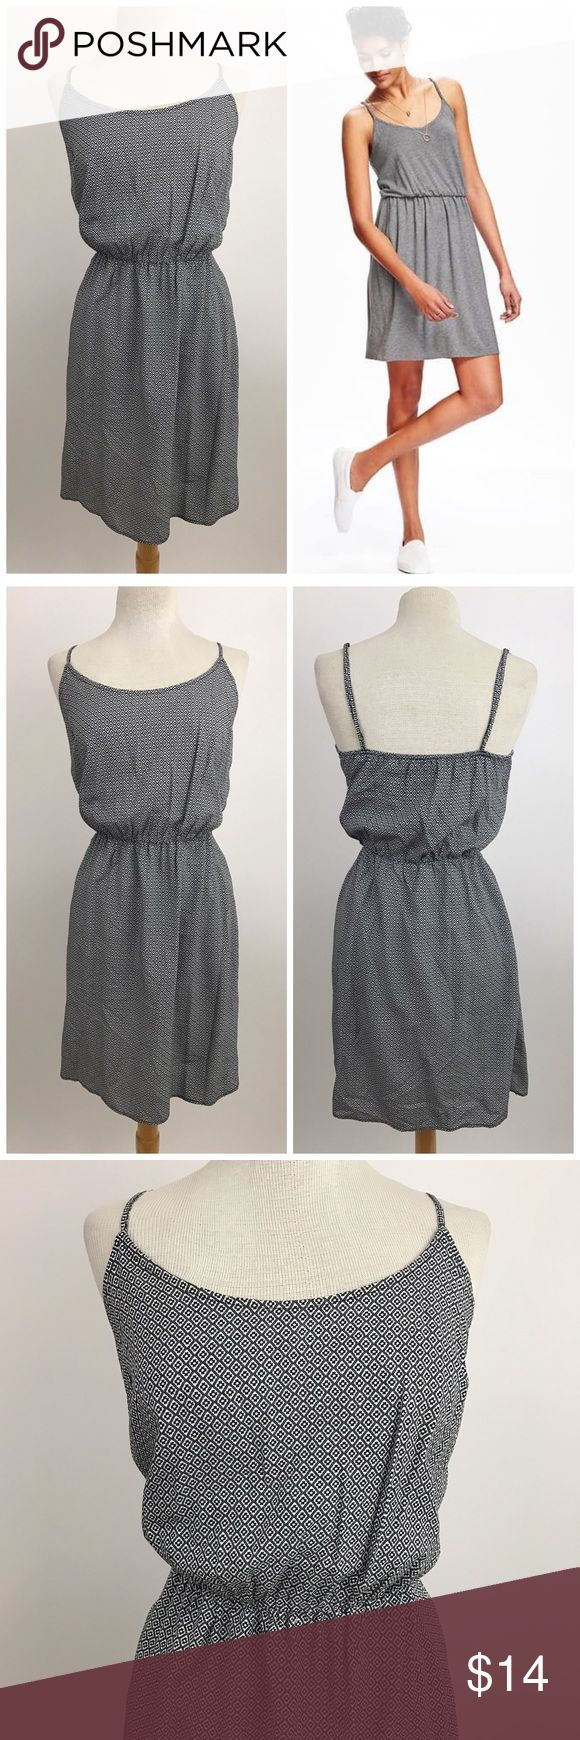 """Old Navy Cami Waisted Dress Light and breezy fitted dress from Old Navy. Adjustable spaghetti straps, cinched waist. White and black pattern.  Size medium  Waist 13"""" Length 32""""  Model is wearing same dress different pattern. Listed for fit reference.  **Price is firm unless bundled Old Navy Dresses Midi"""